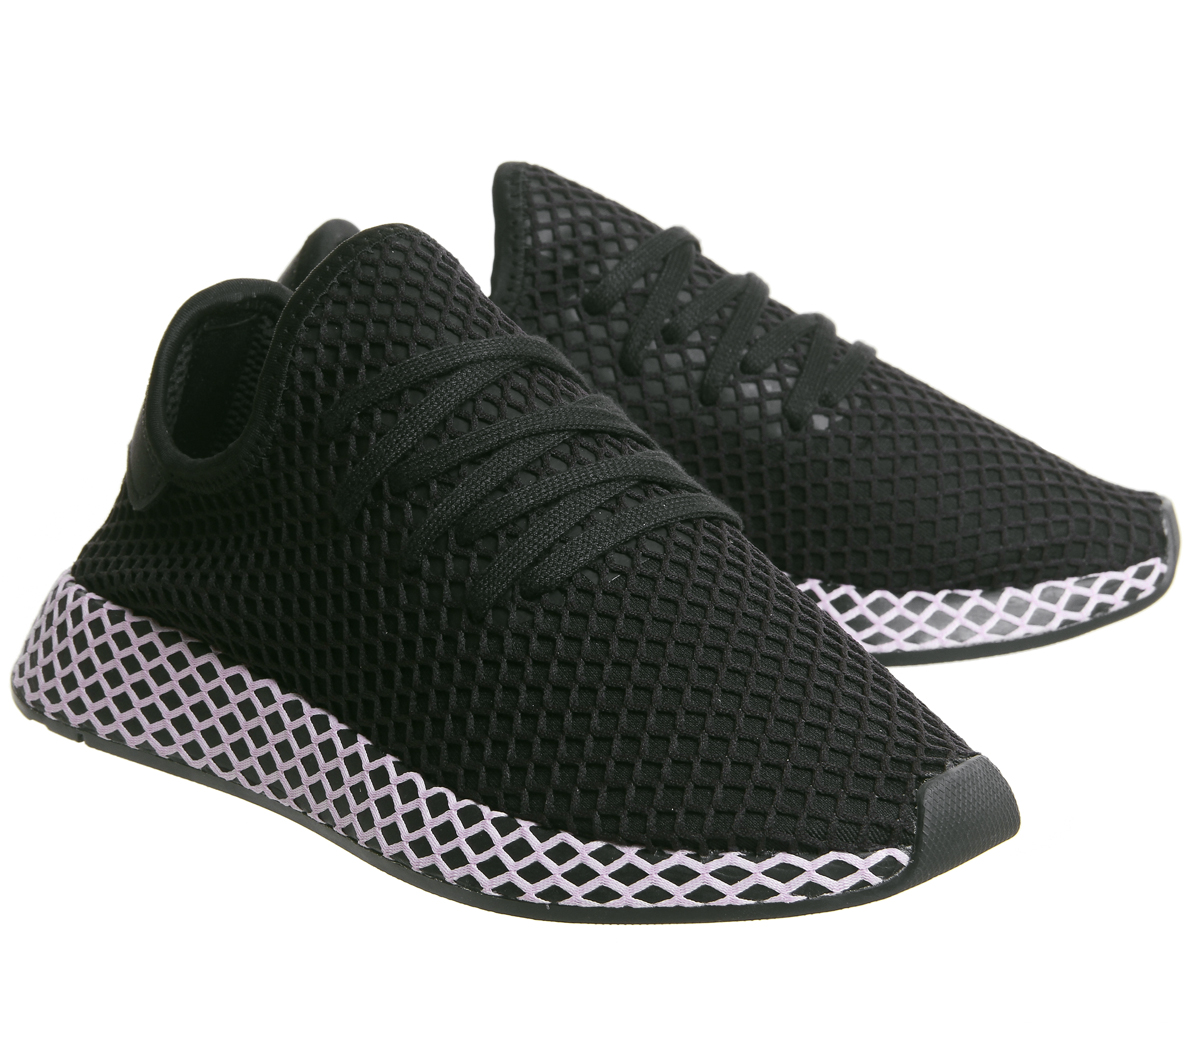 6d8acbd175188 Womens Adidas Deerupt Trainers Core Black Clear Lilac F Trainers ...